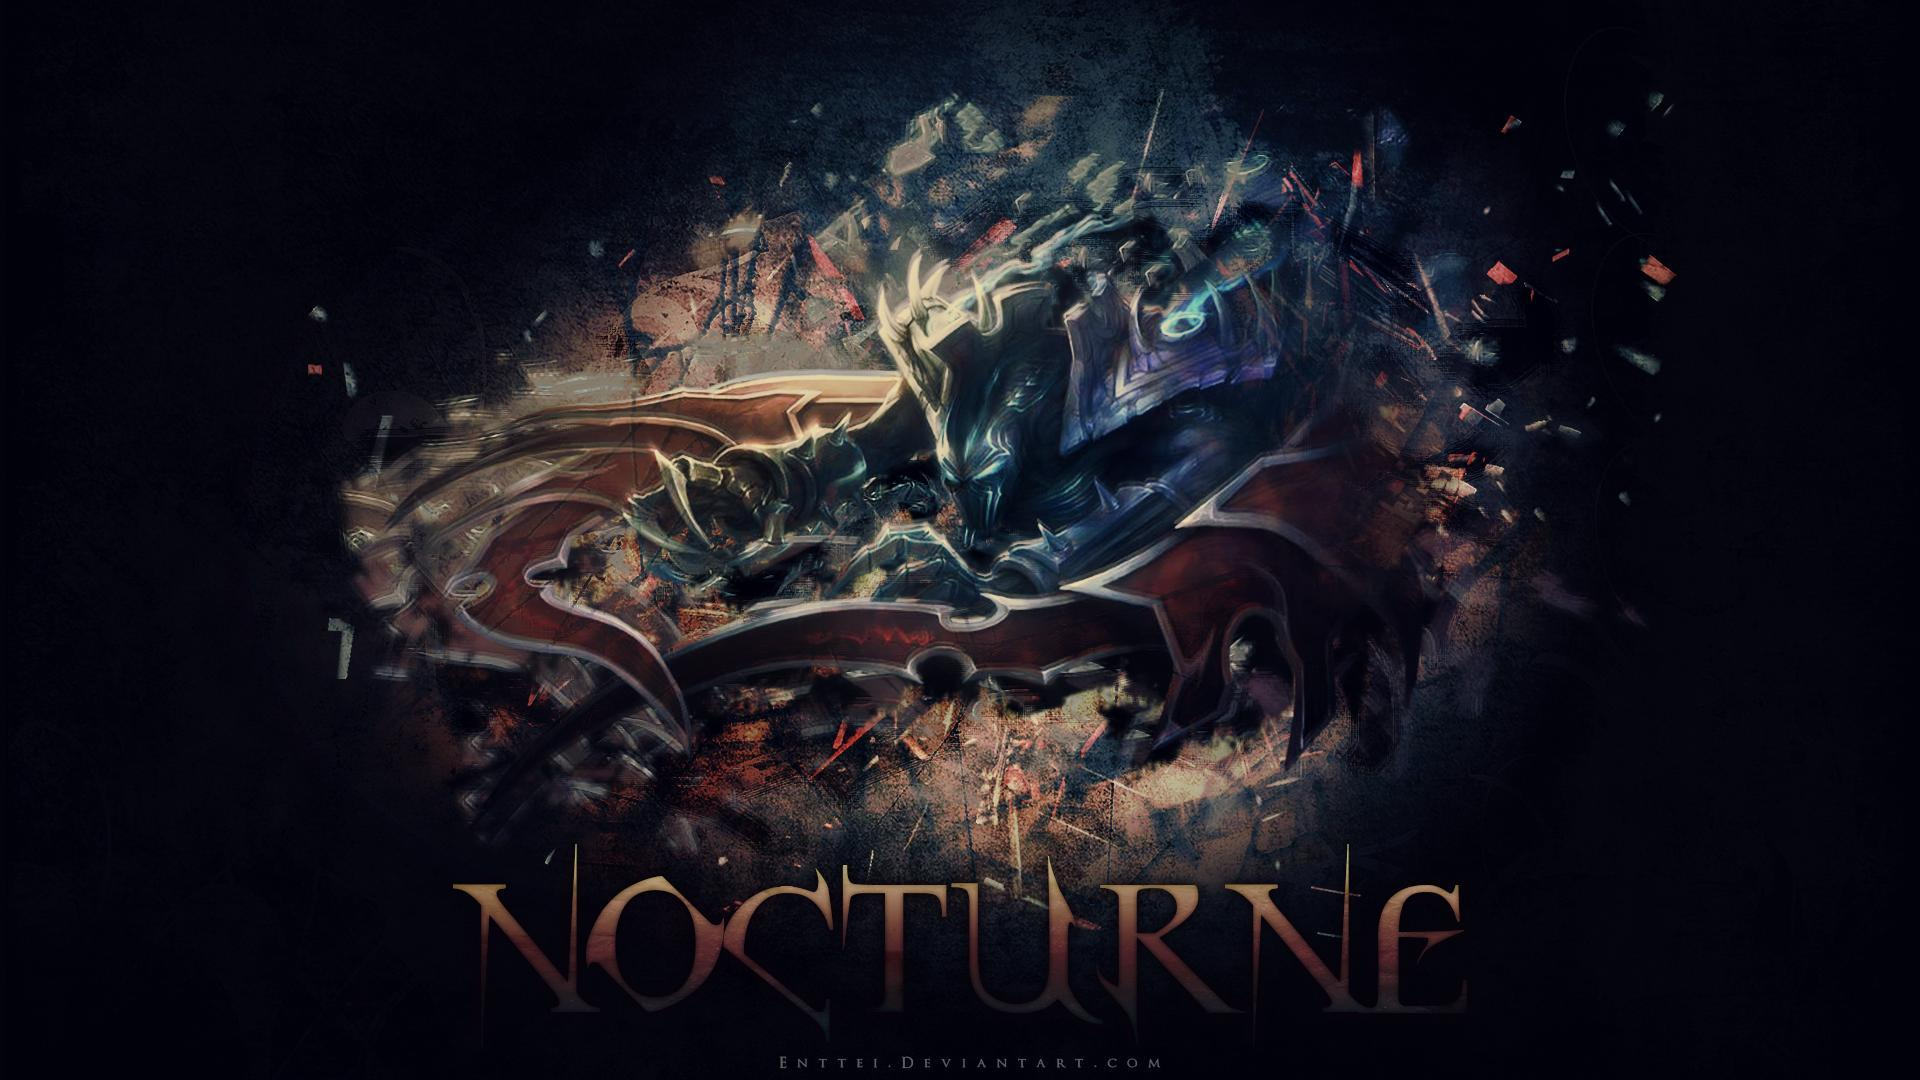 Nocturne Wallpapers - Wallpaper Cave